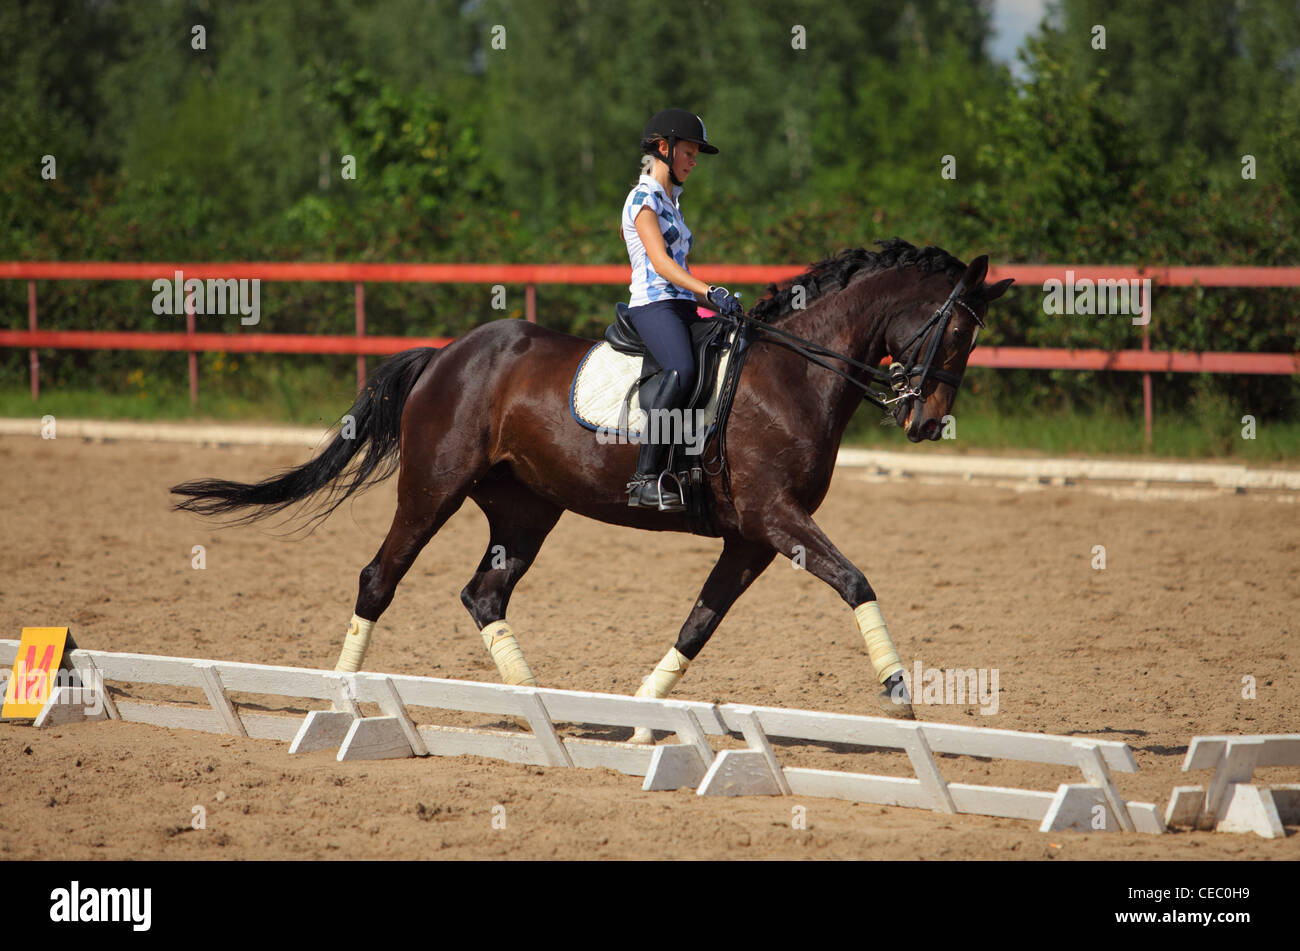 Horse with rider performing the Spanish walk - Stock Image